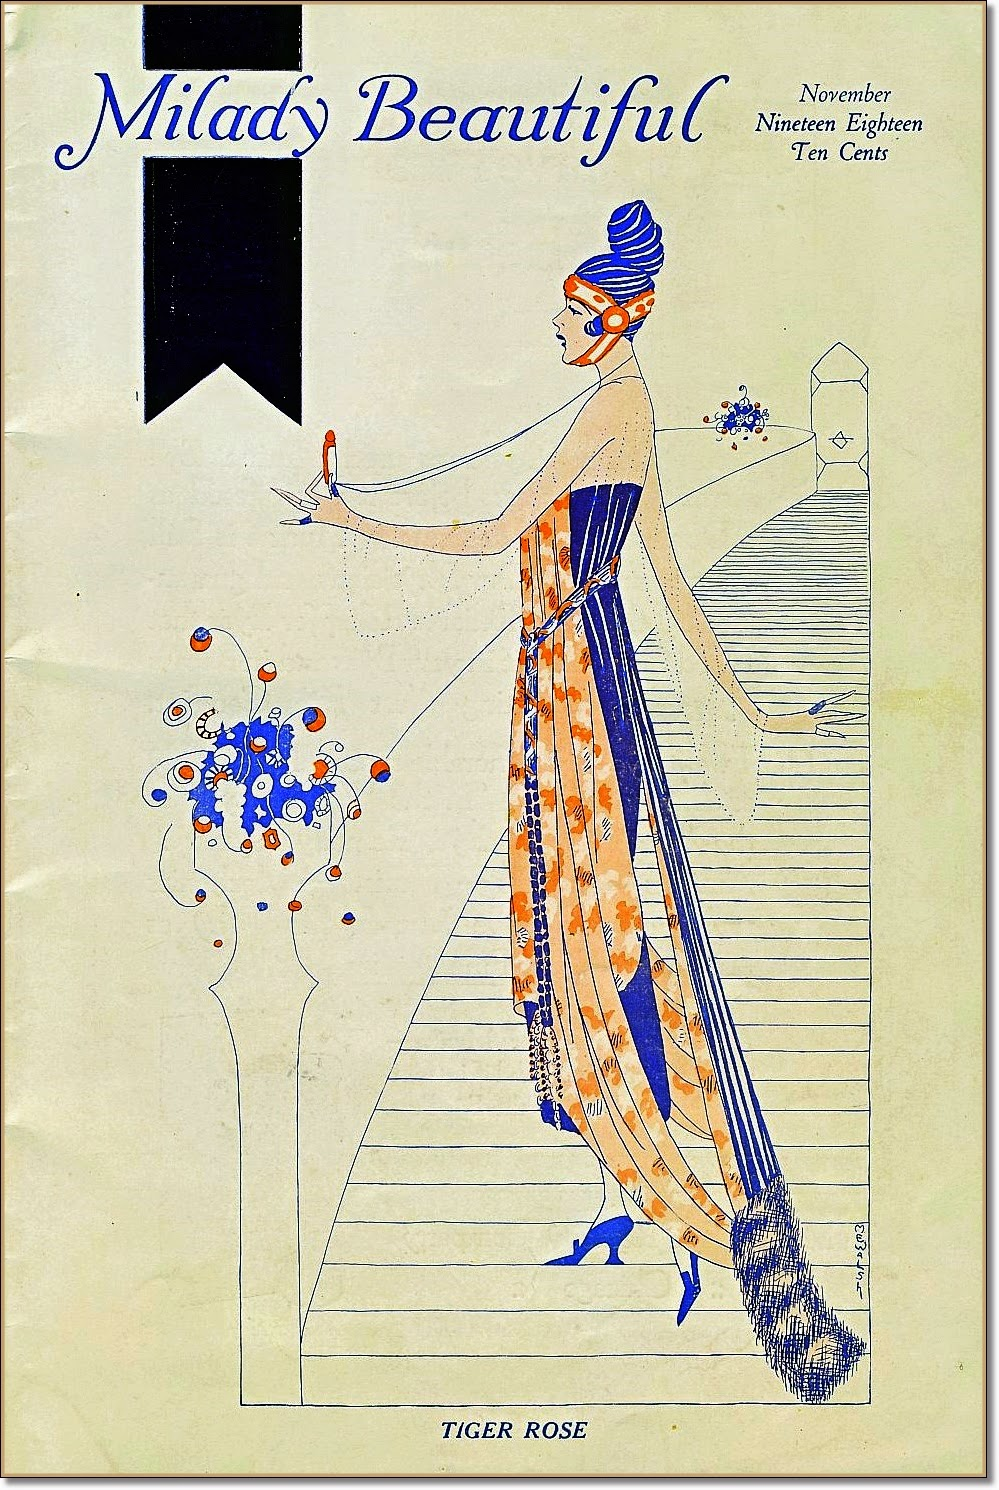 Milady Beautiful cover 1918